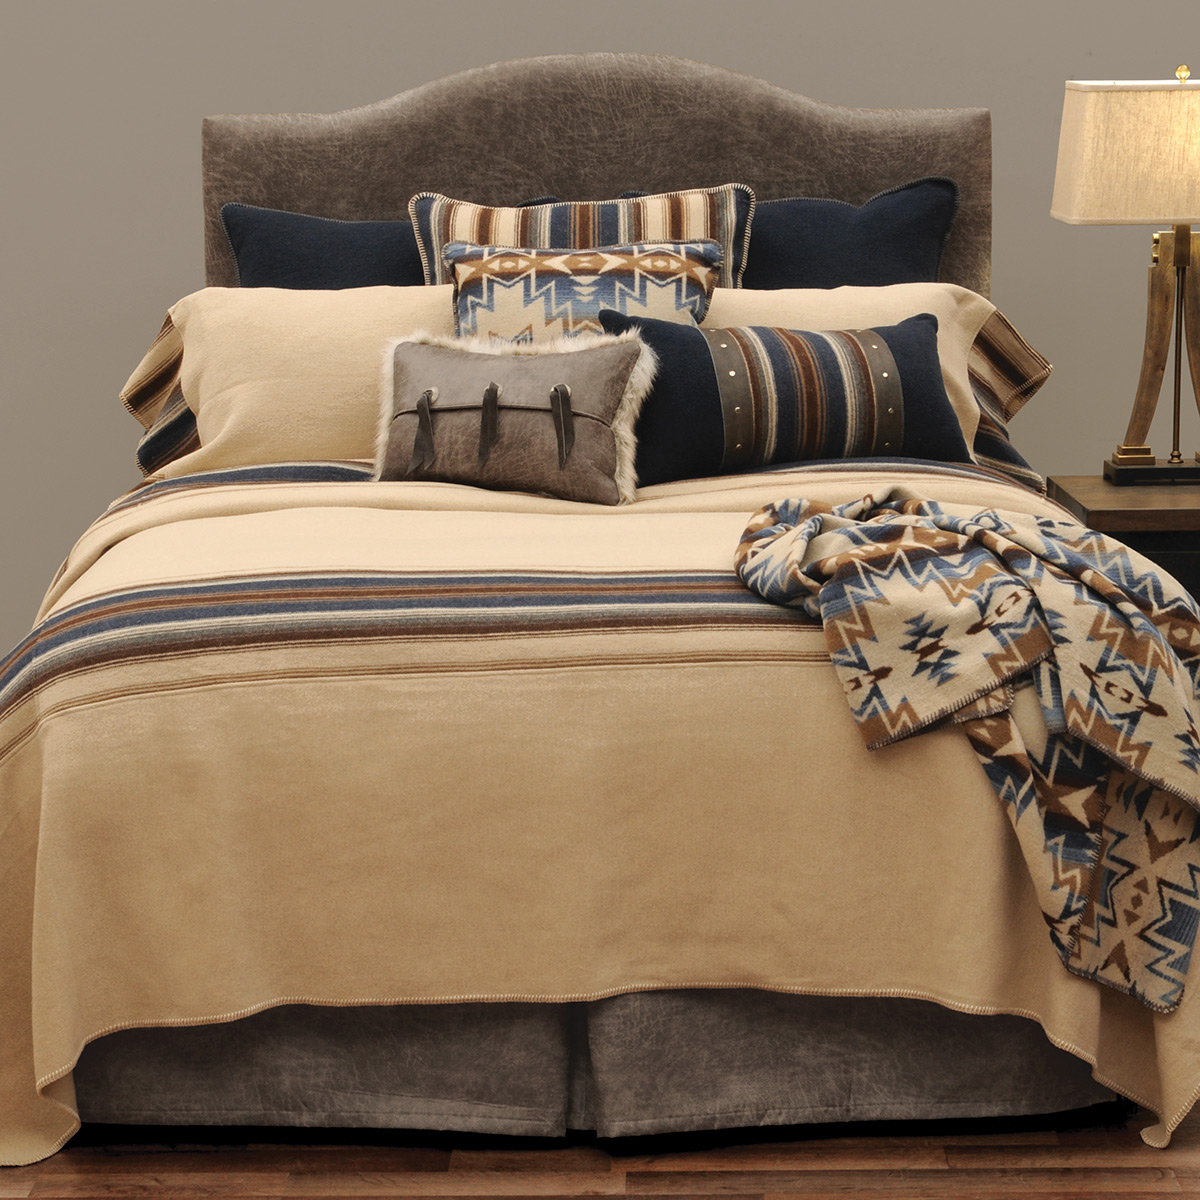 Cadillac Ranch Basic Bed Set - Super Queen